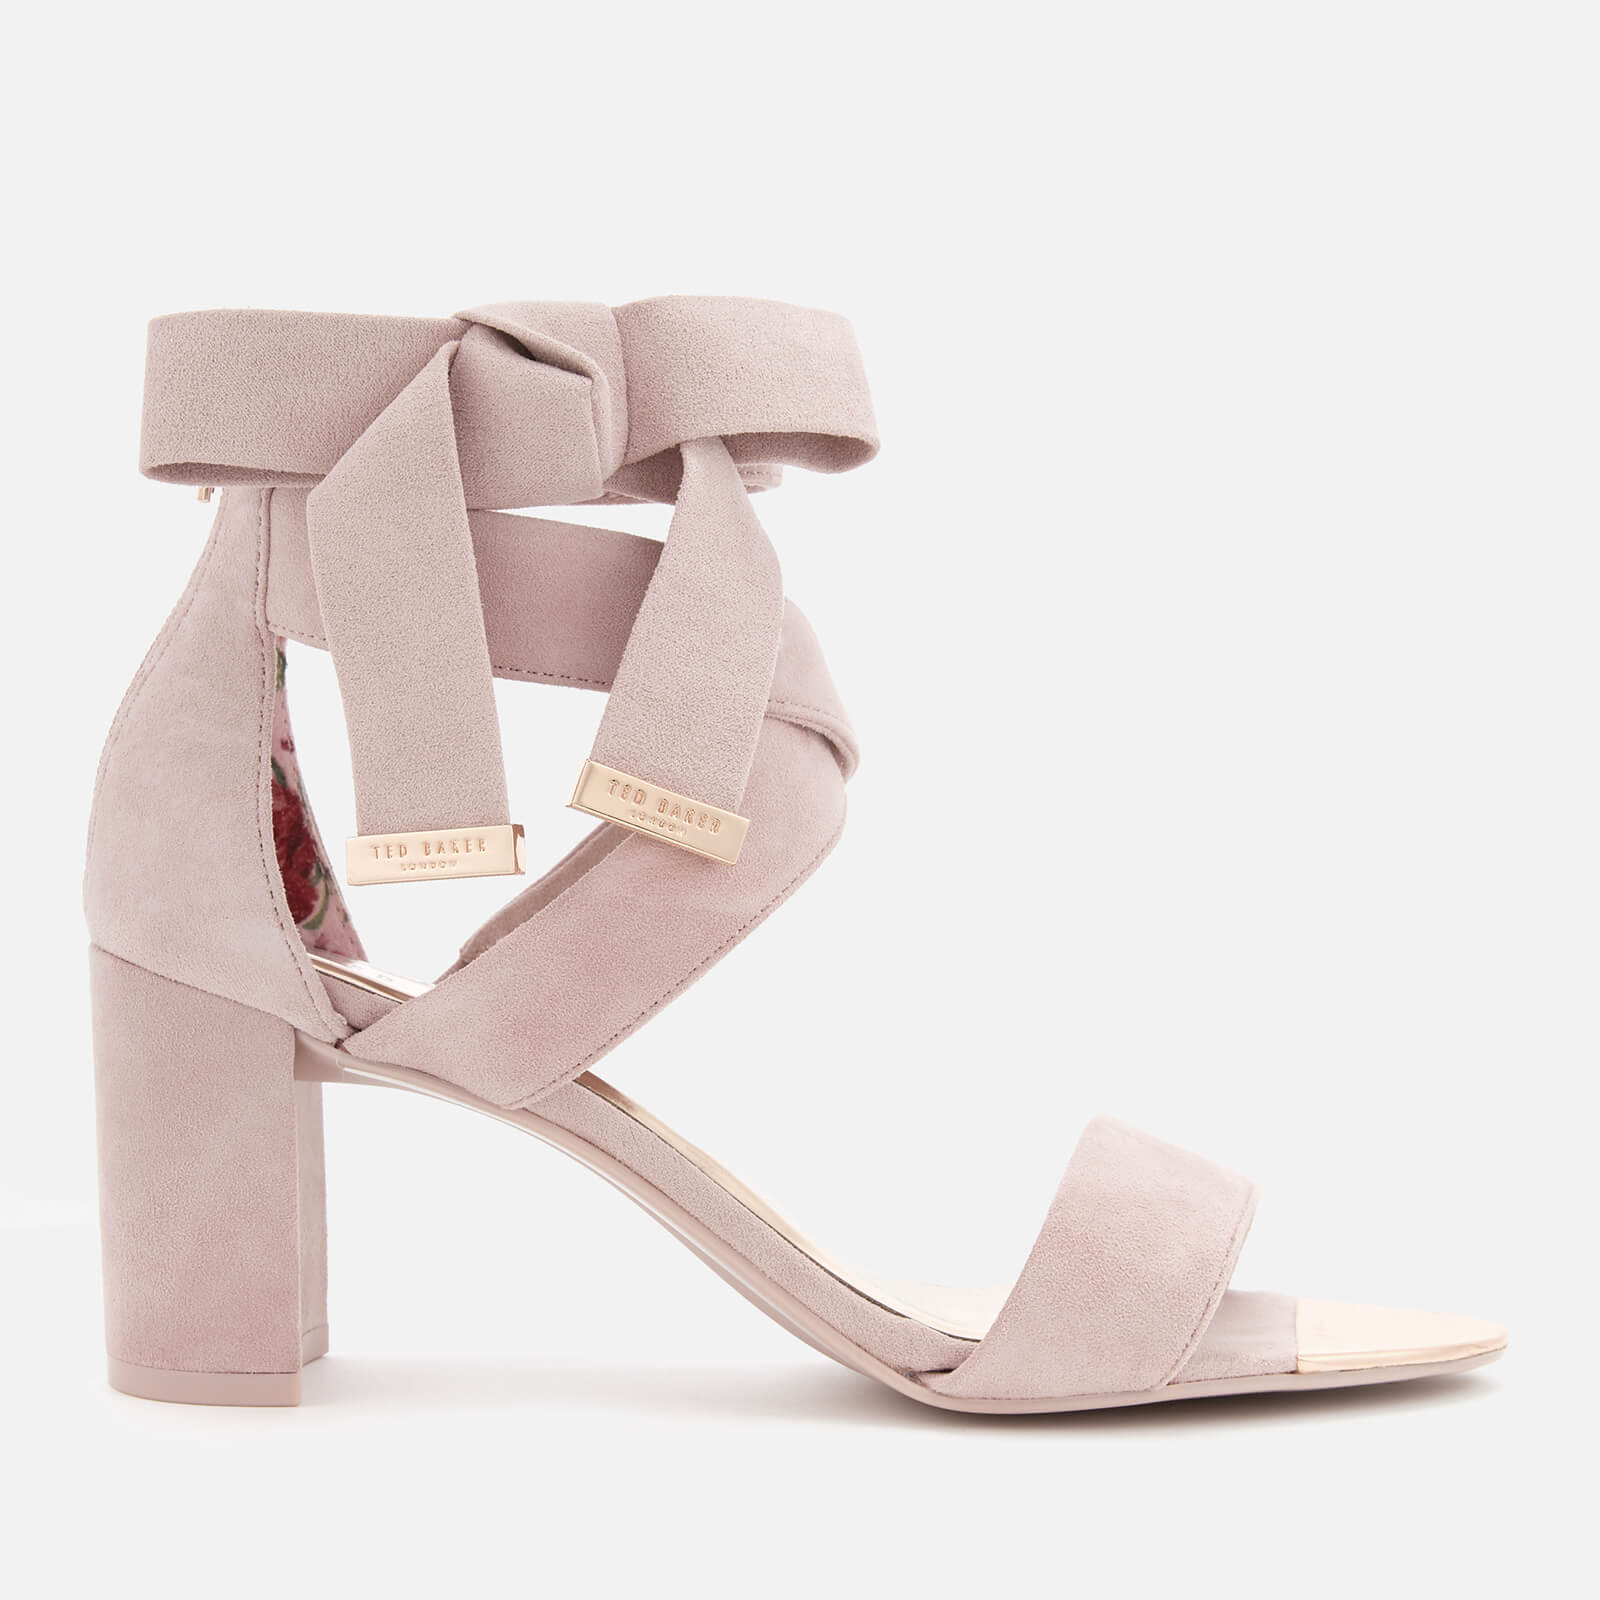 35585005944 Ted Baker Women s Noxen 2 Suede Block Heeled Sandals - Mink Pink ...